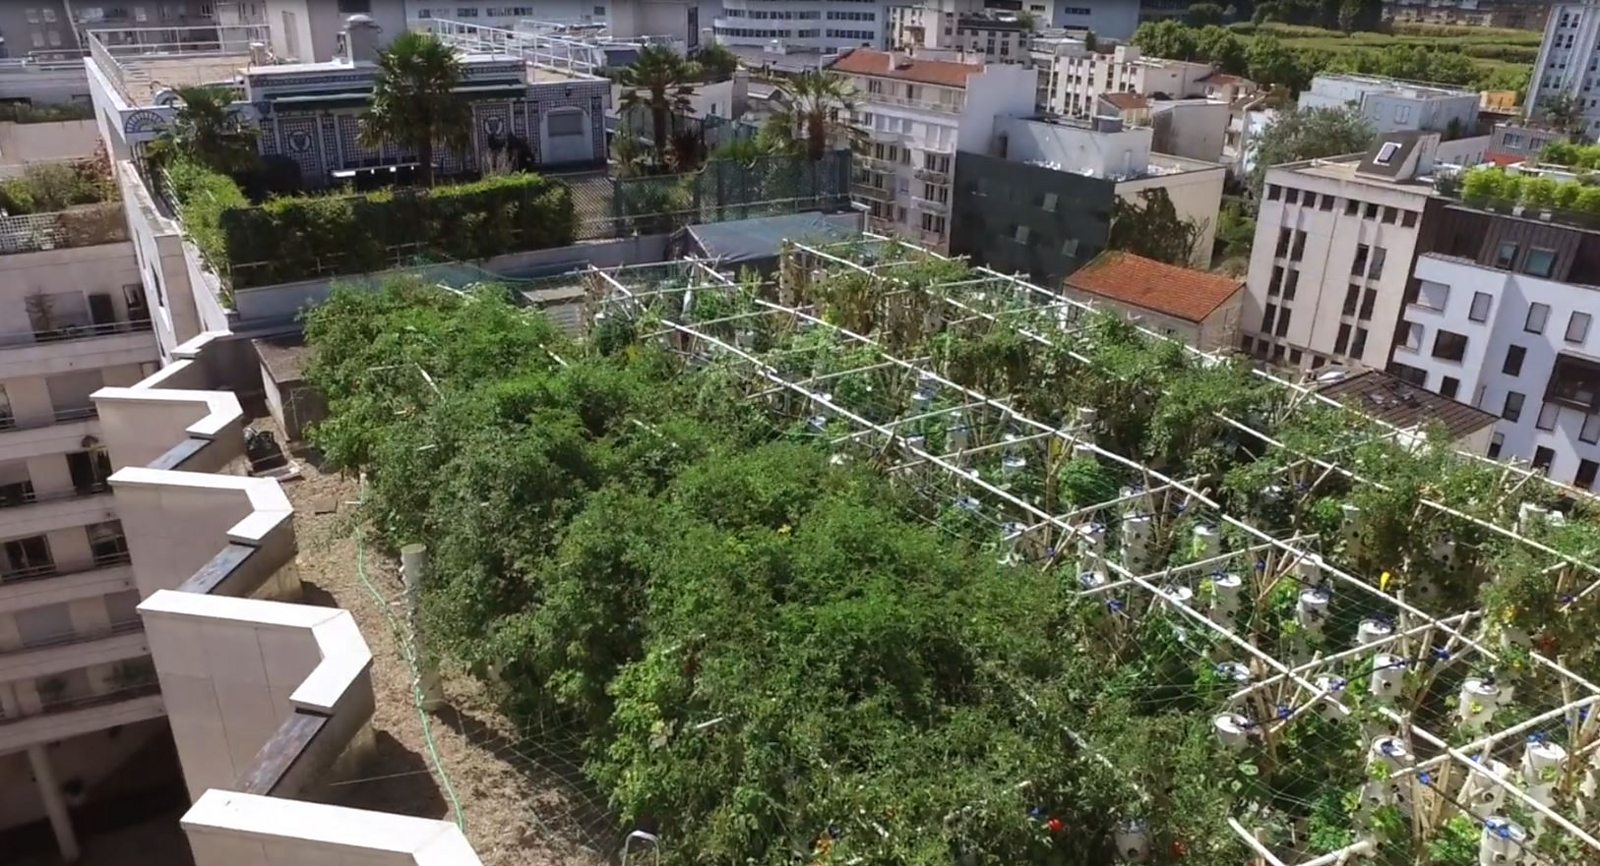 'The world's largest urban rooftop farm'